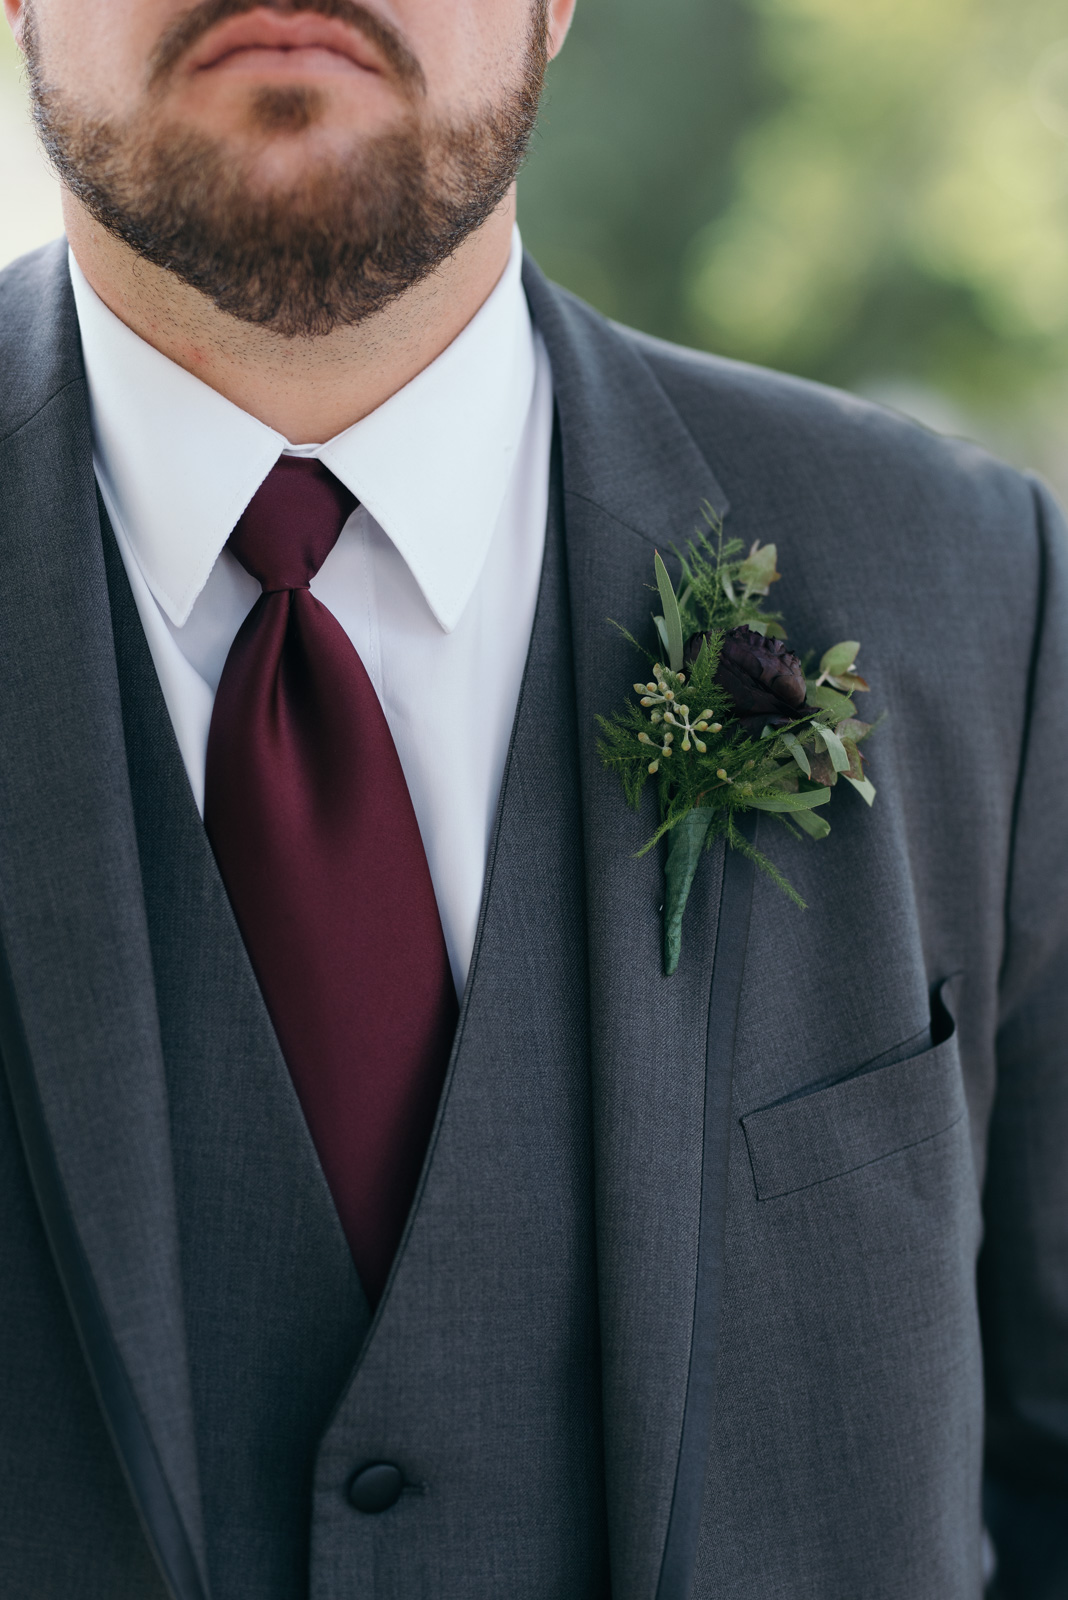 grooms suit with maroon tie and boutonniere